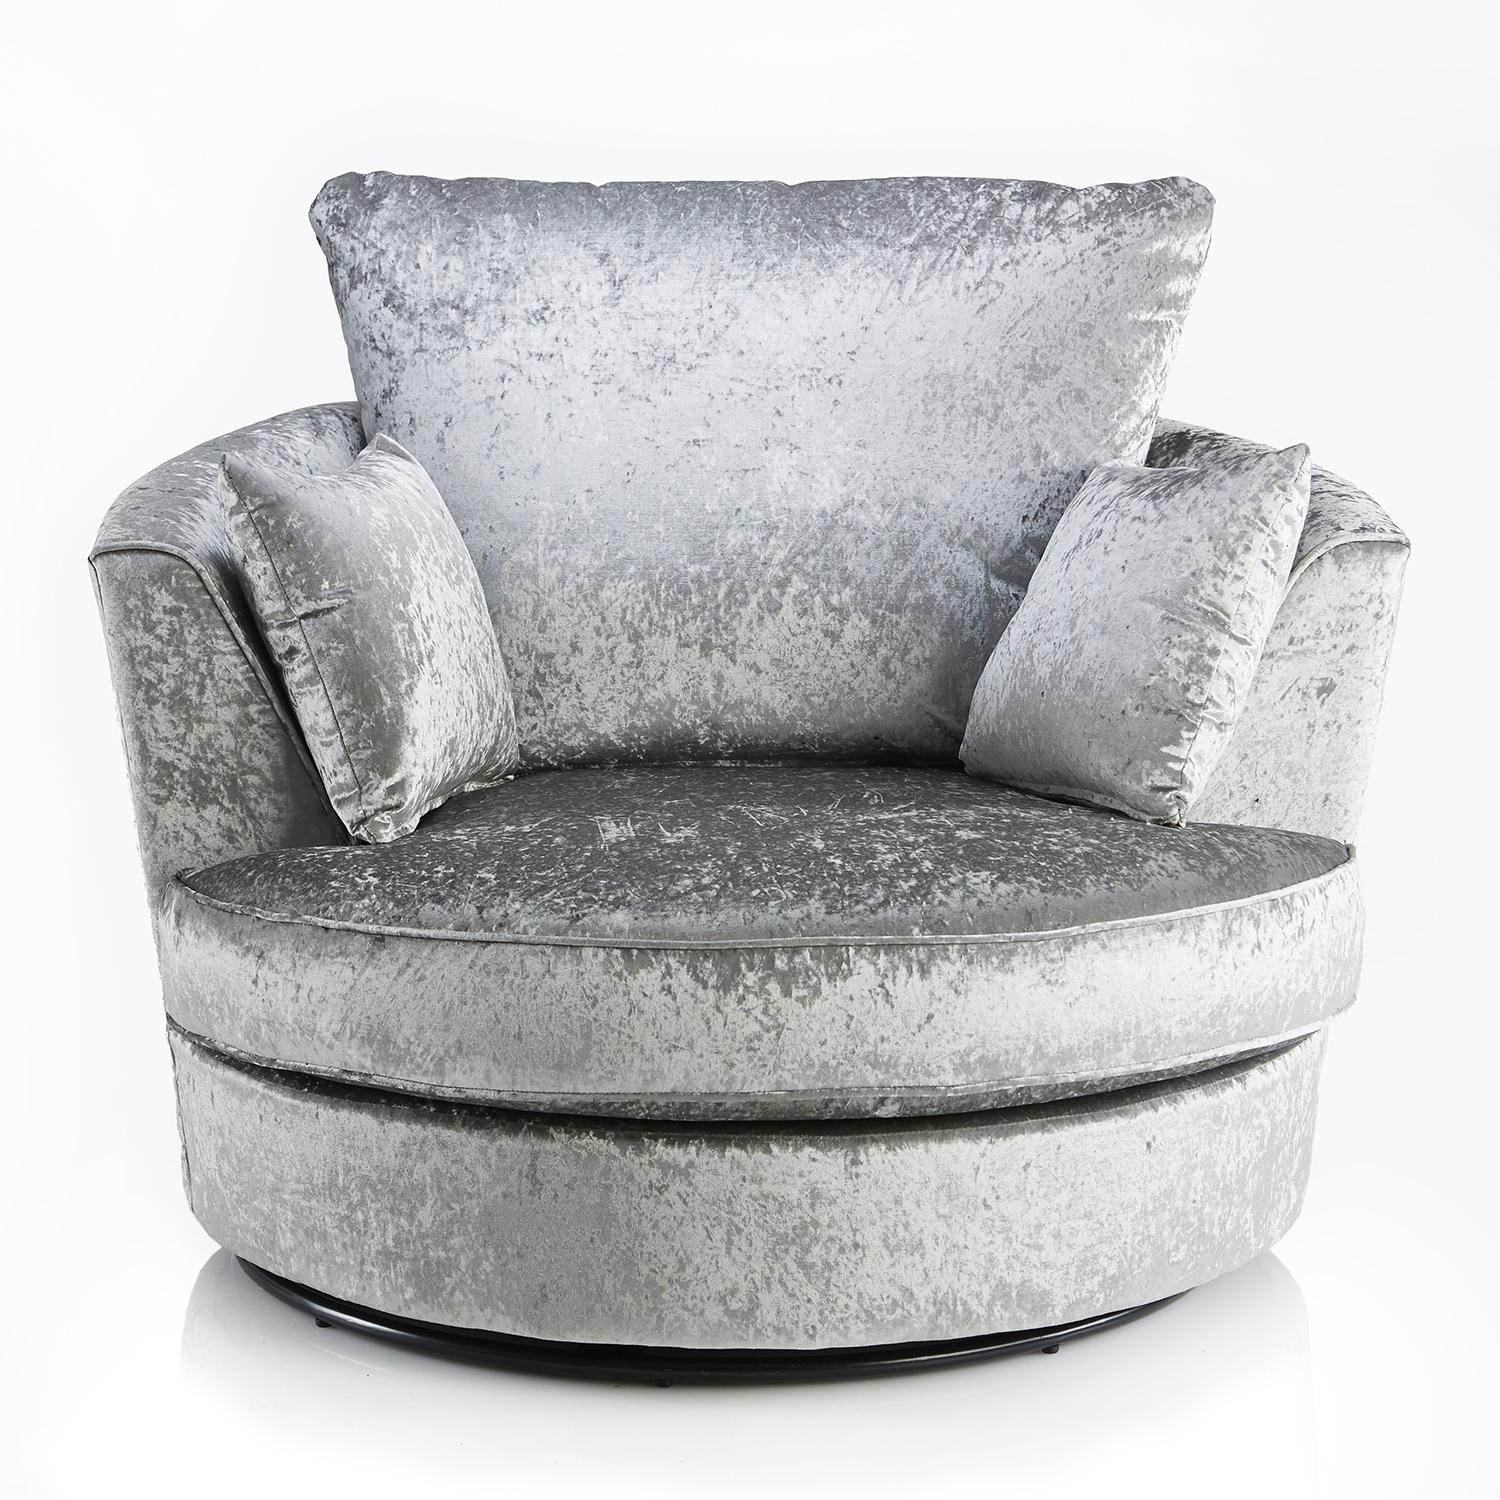 Crushed Velvet Furniture | Sofas, Beds, Chairs, Cushions Pertaining To Spinning Sofa Chairs (View 19 of 20)